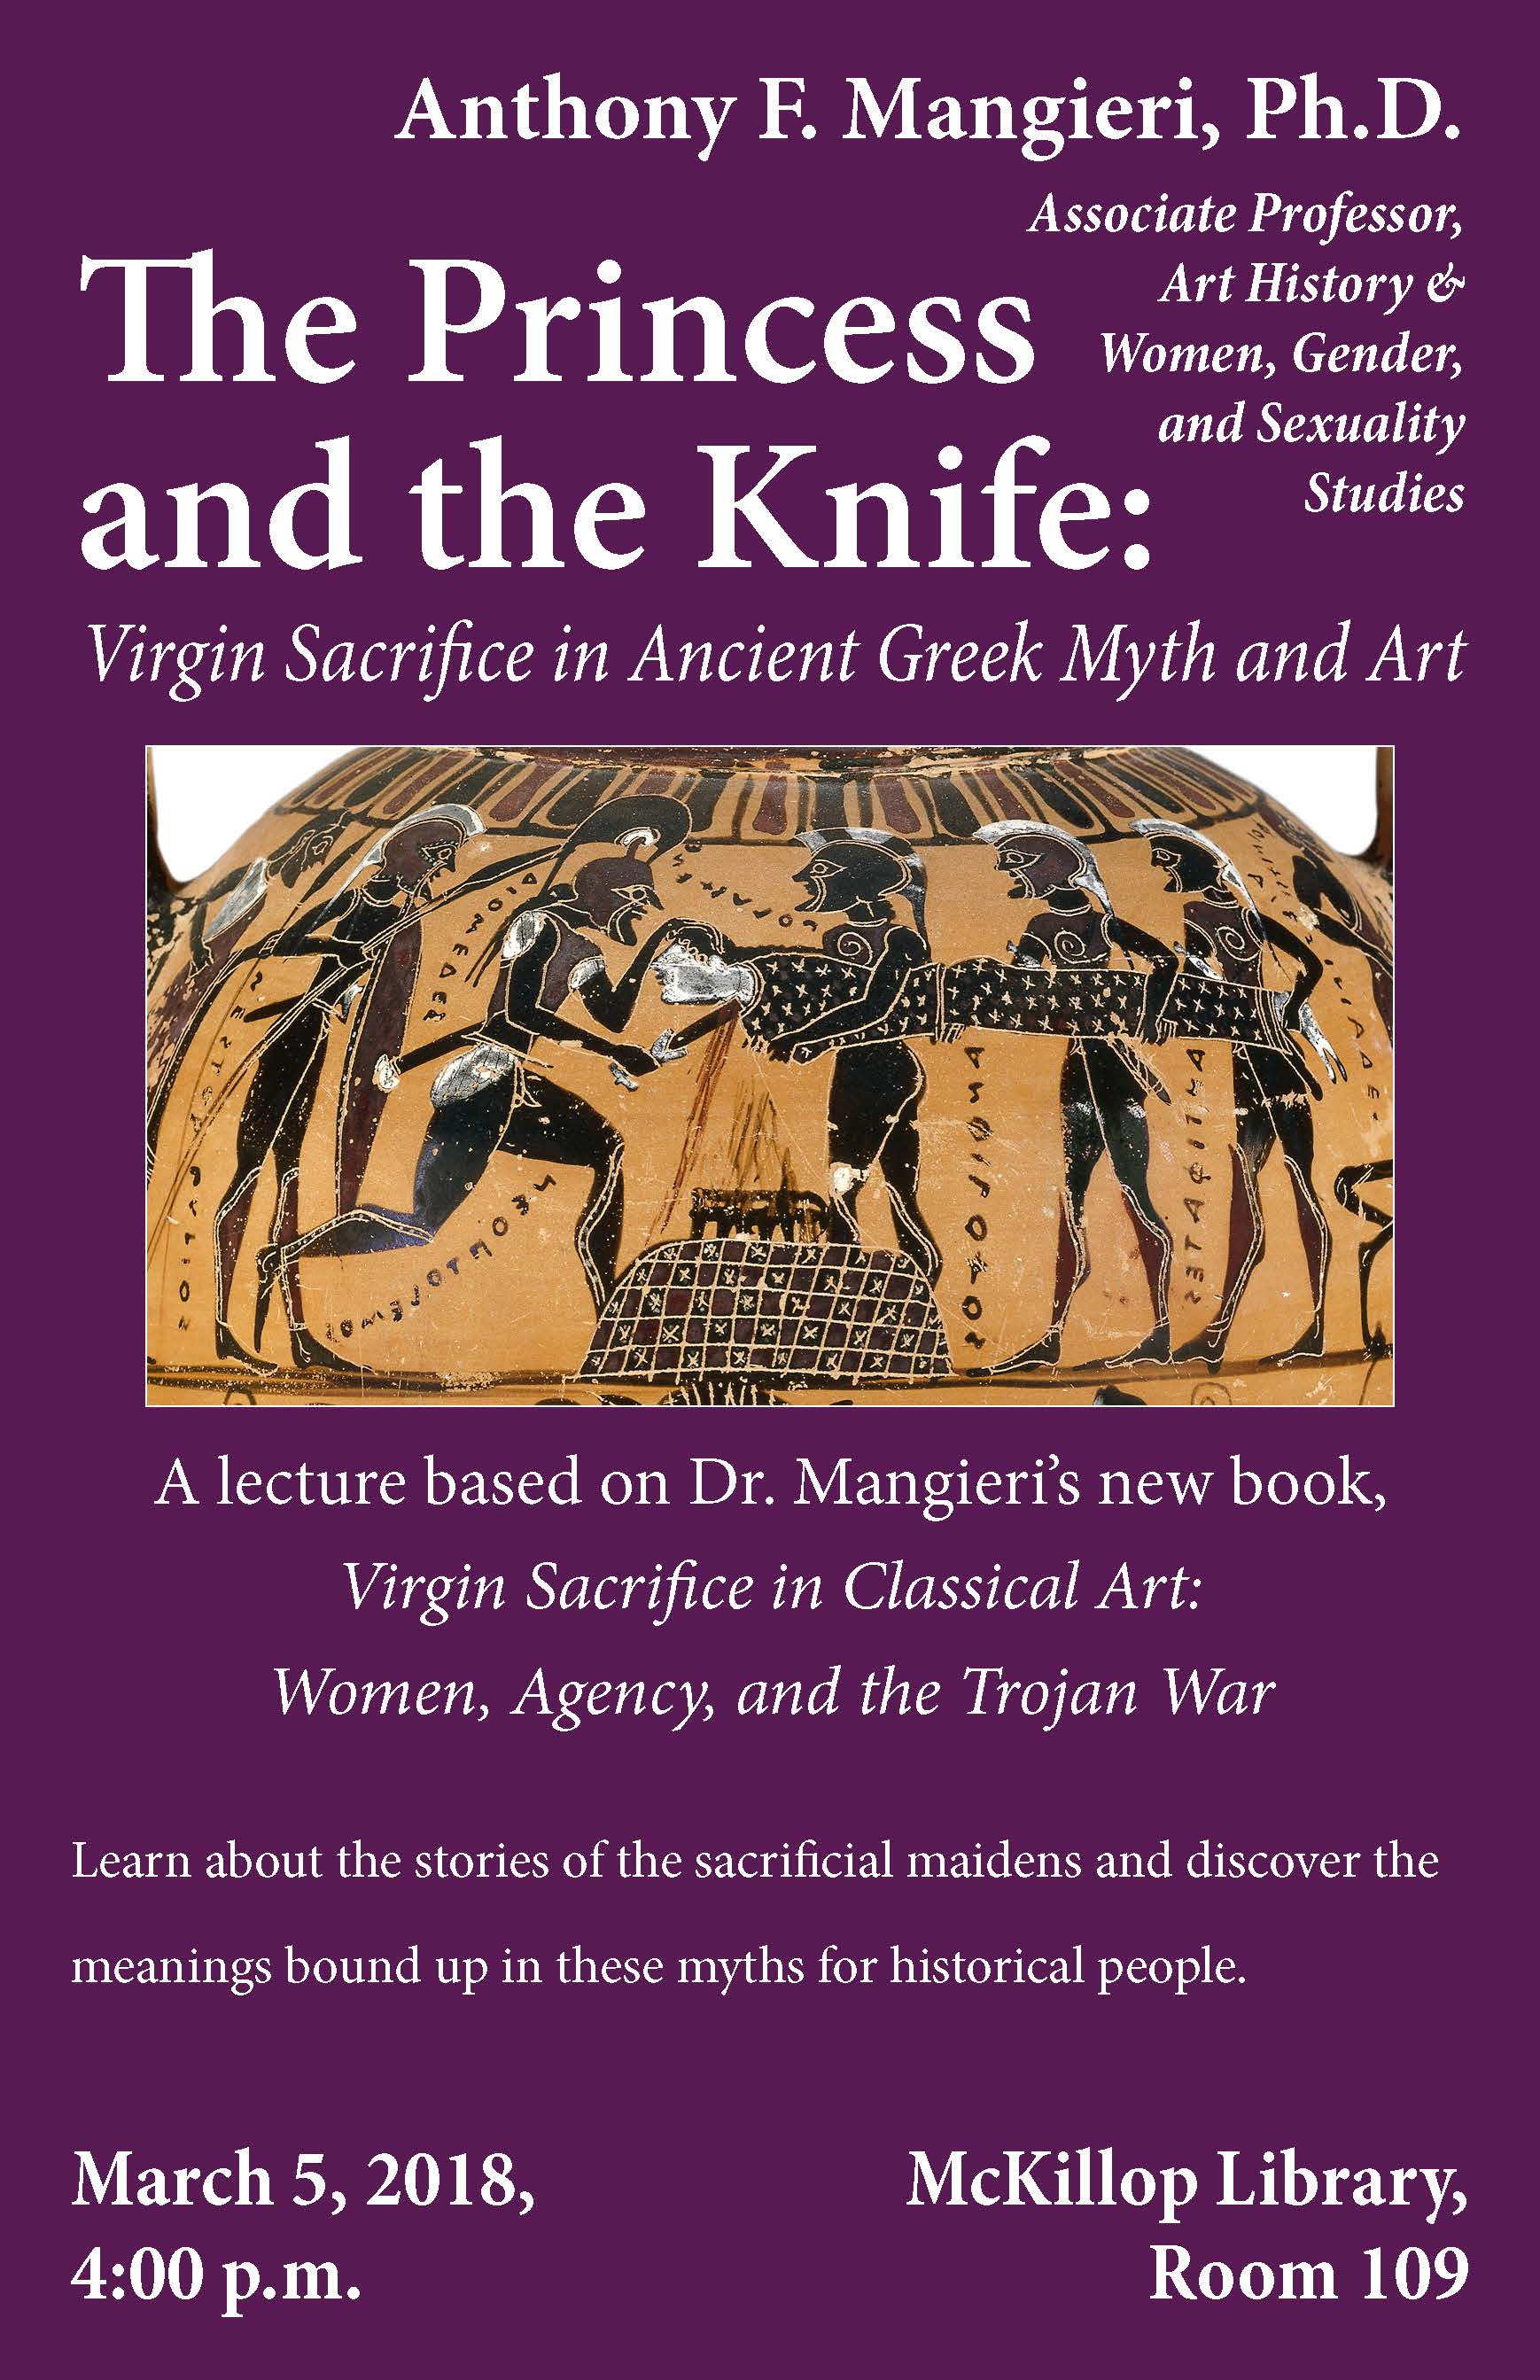 The Princess and the Knife Virgin Sacrifice in Ancient Greek Myth and Art presented by Dr. Anthony Mangieri